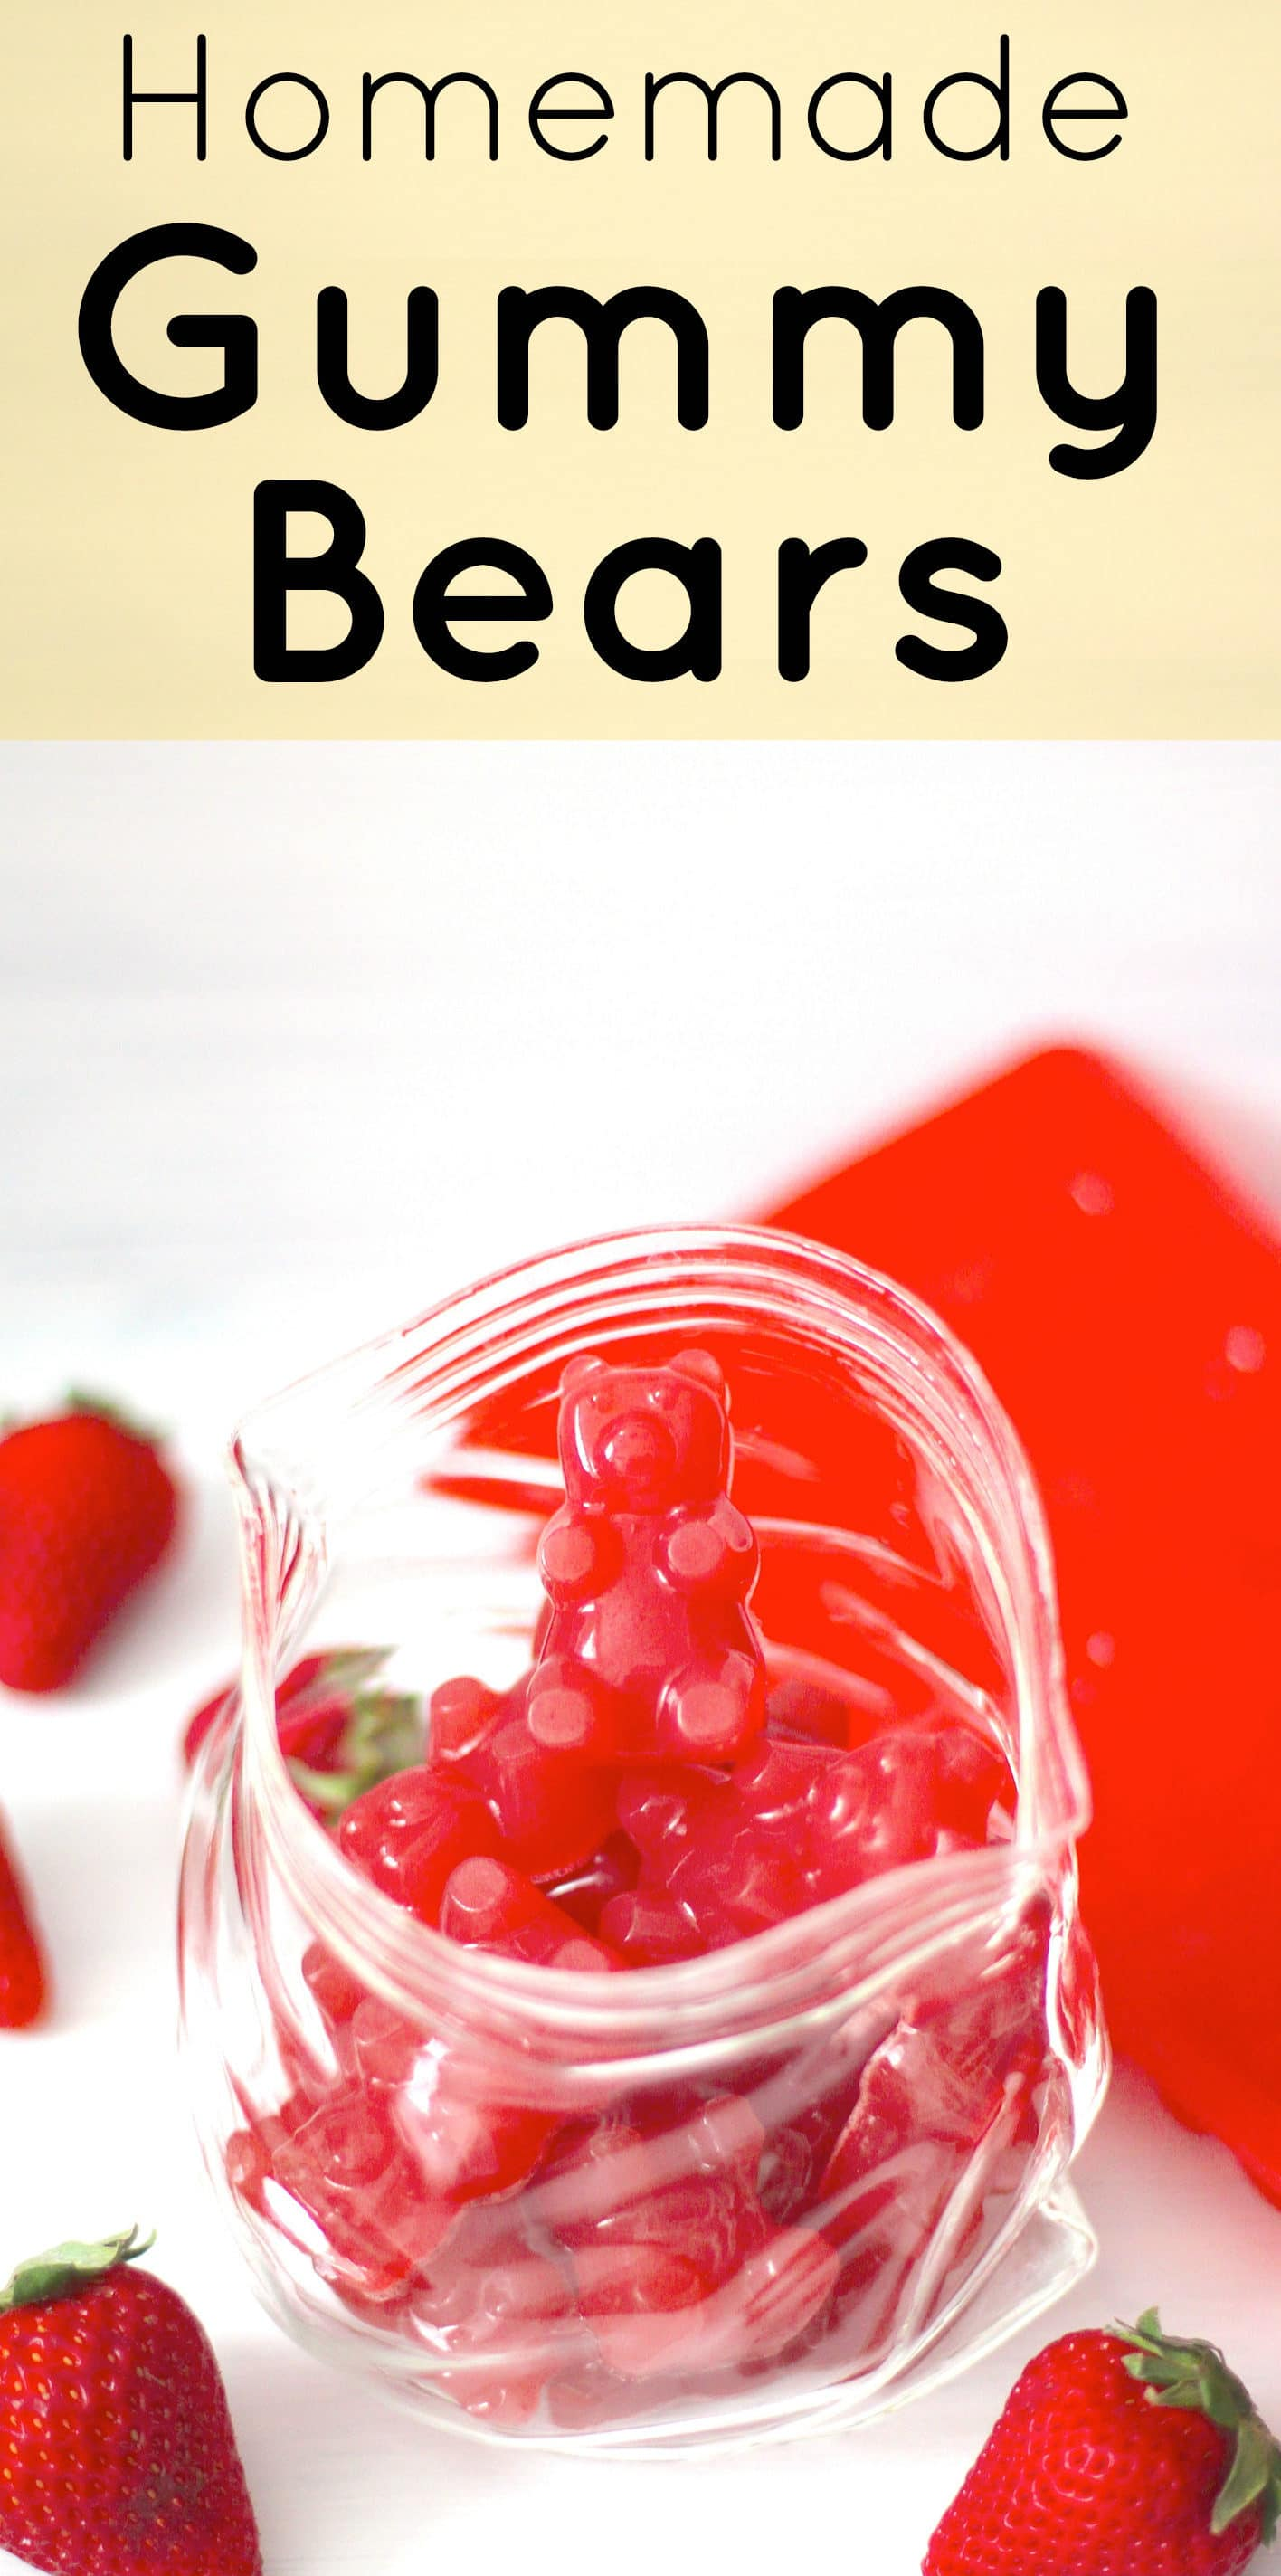 These Healthy Homemade Gummy Bears are super chewy, sweet and addictive, just like the storebought stuff! These naturally fruity Gummy Bears are fat free, refined sugar free, and low carb... no corn syrup or artificial flavorings whatsoever! But don't worry, you'd never know these are actually good for you!